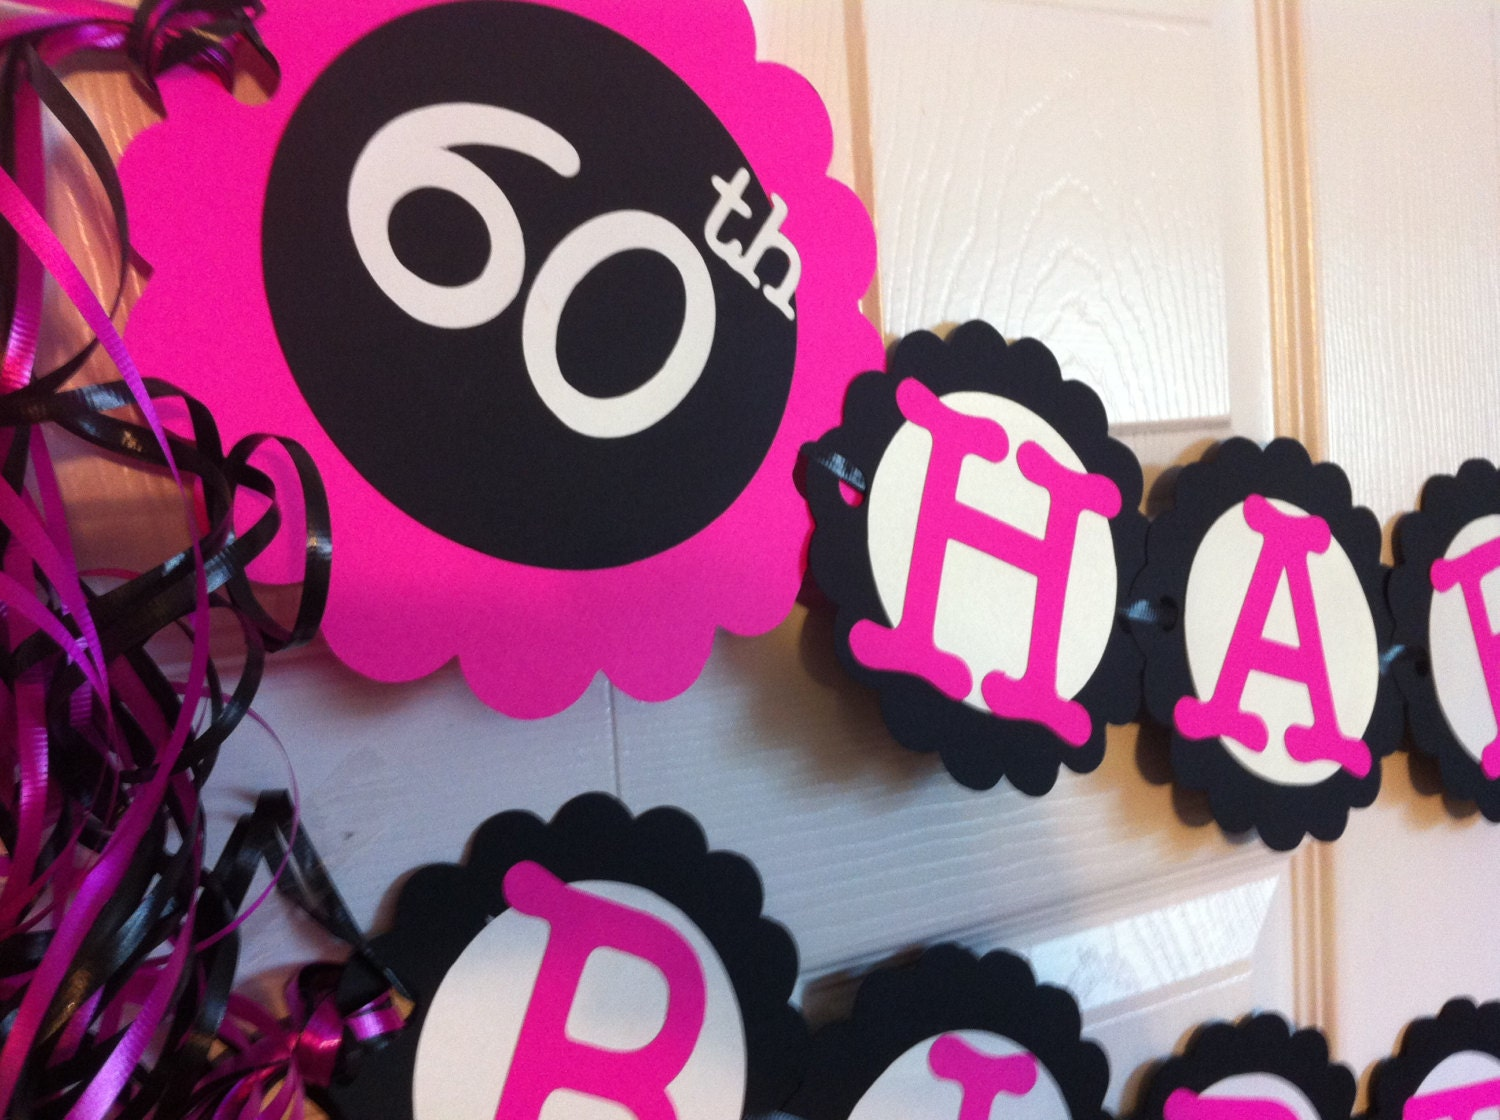 60th birthday decorations personalization available for 60th birthday decoration